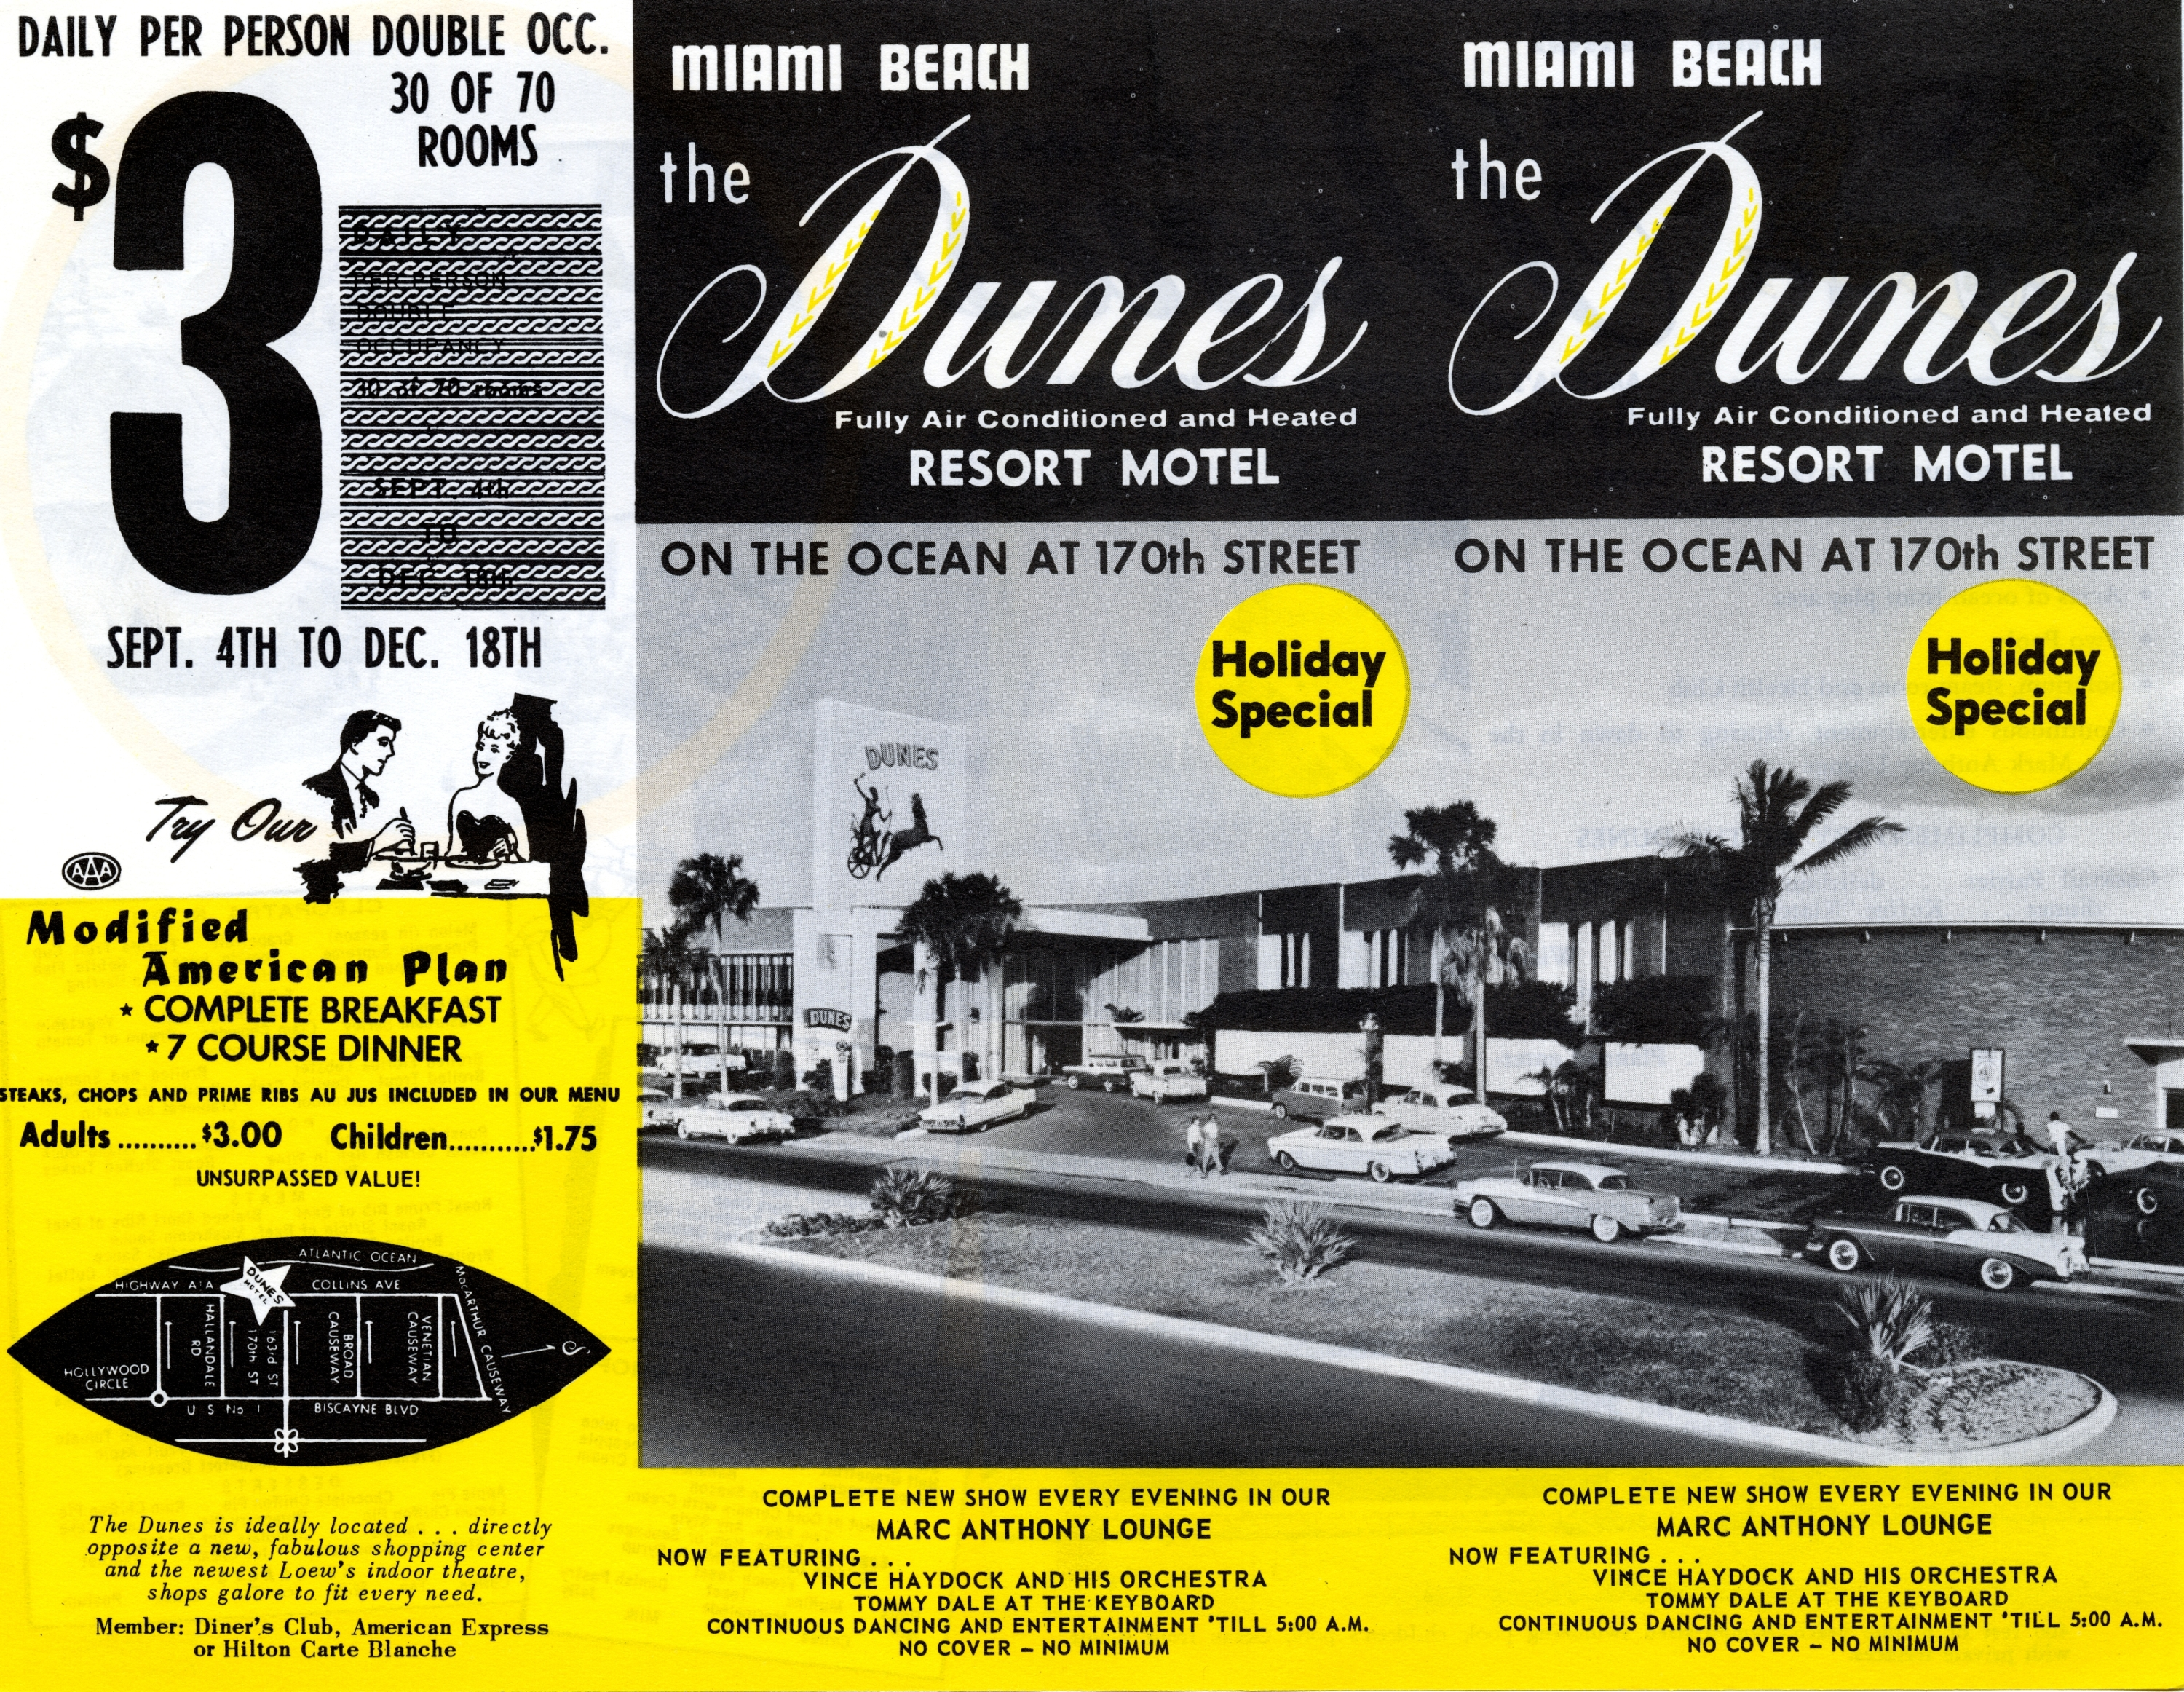 Dunes Resort Motel, Miami Beach, Florida.